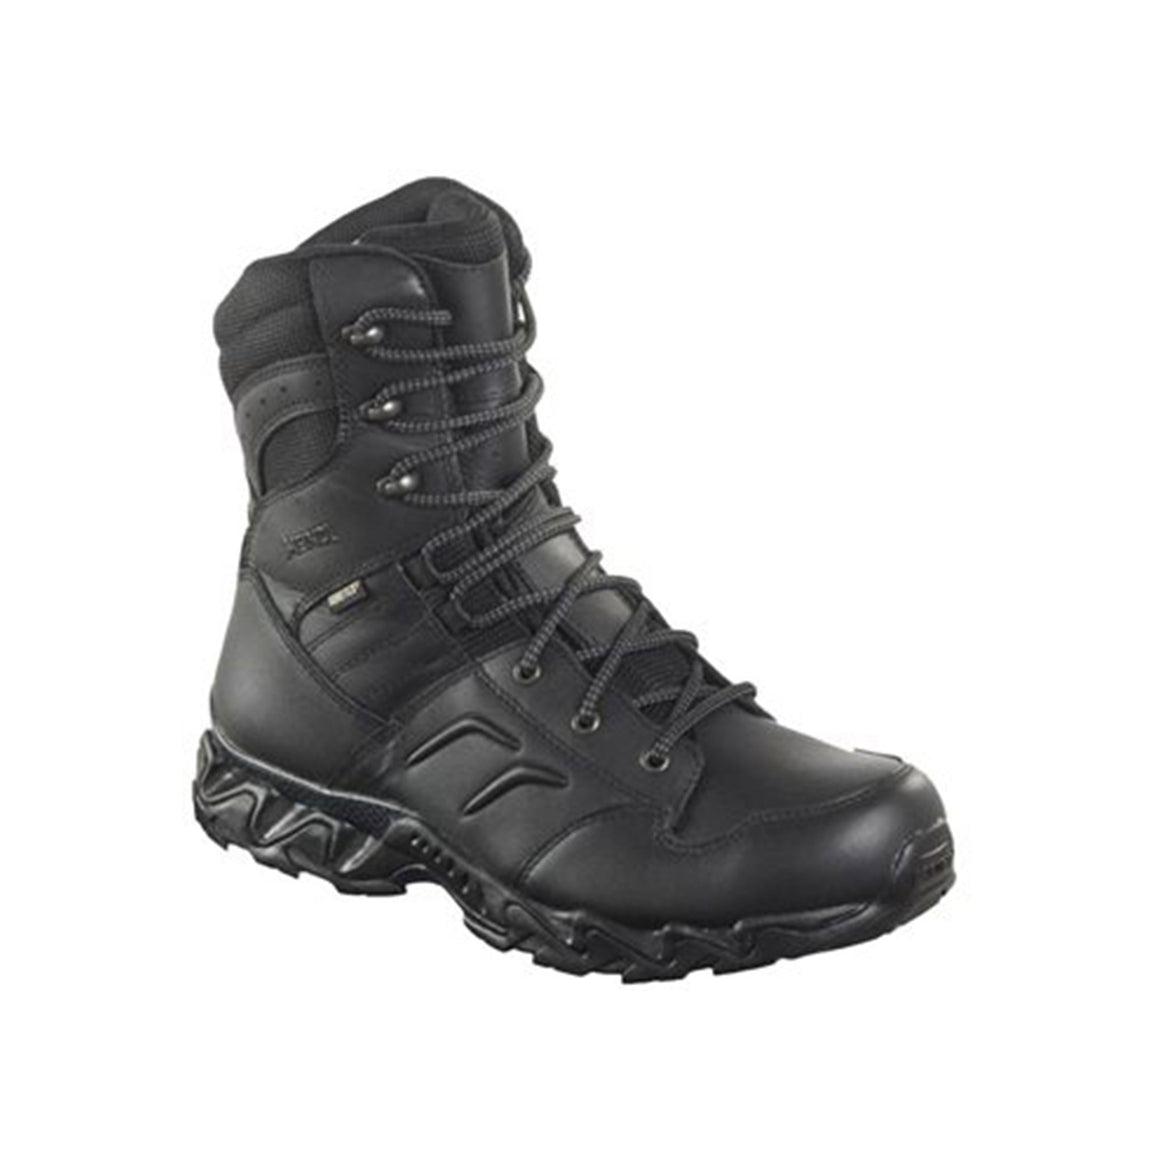 Meindl Black Cobra GTX (R) - Men's